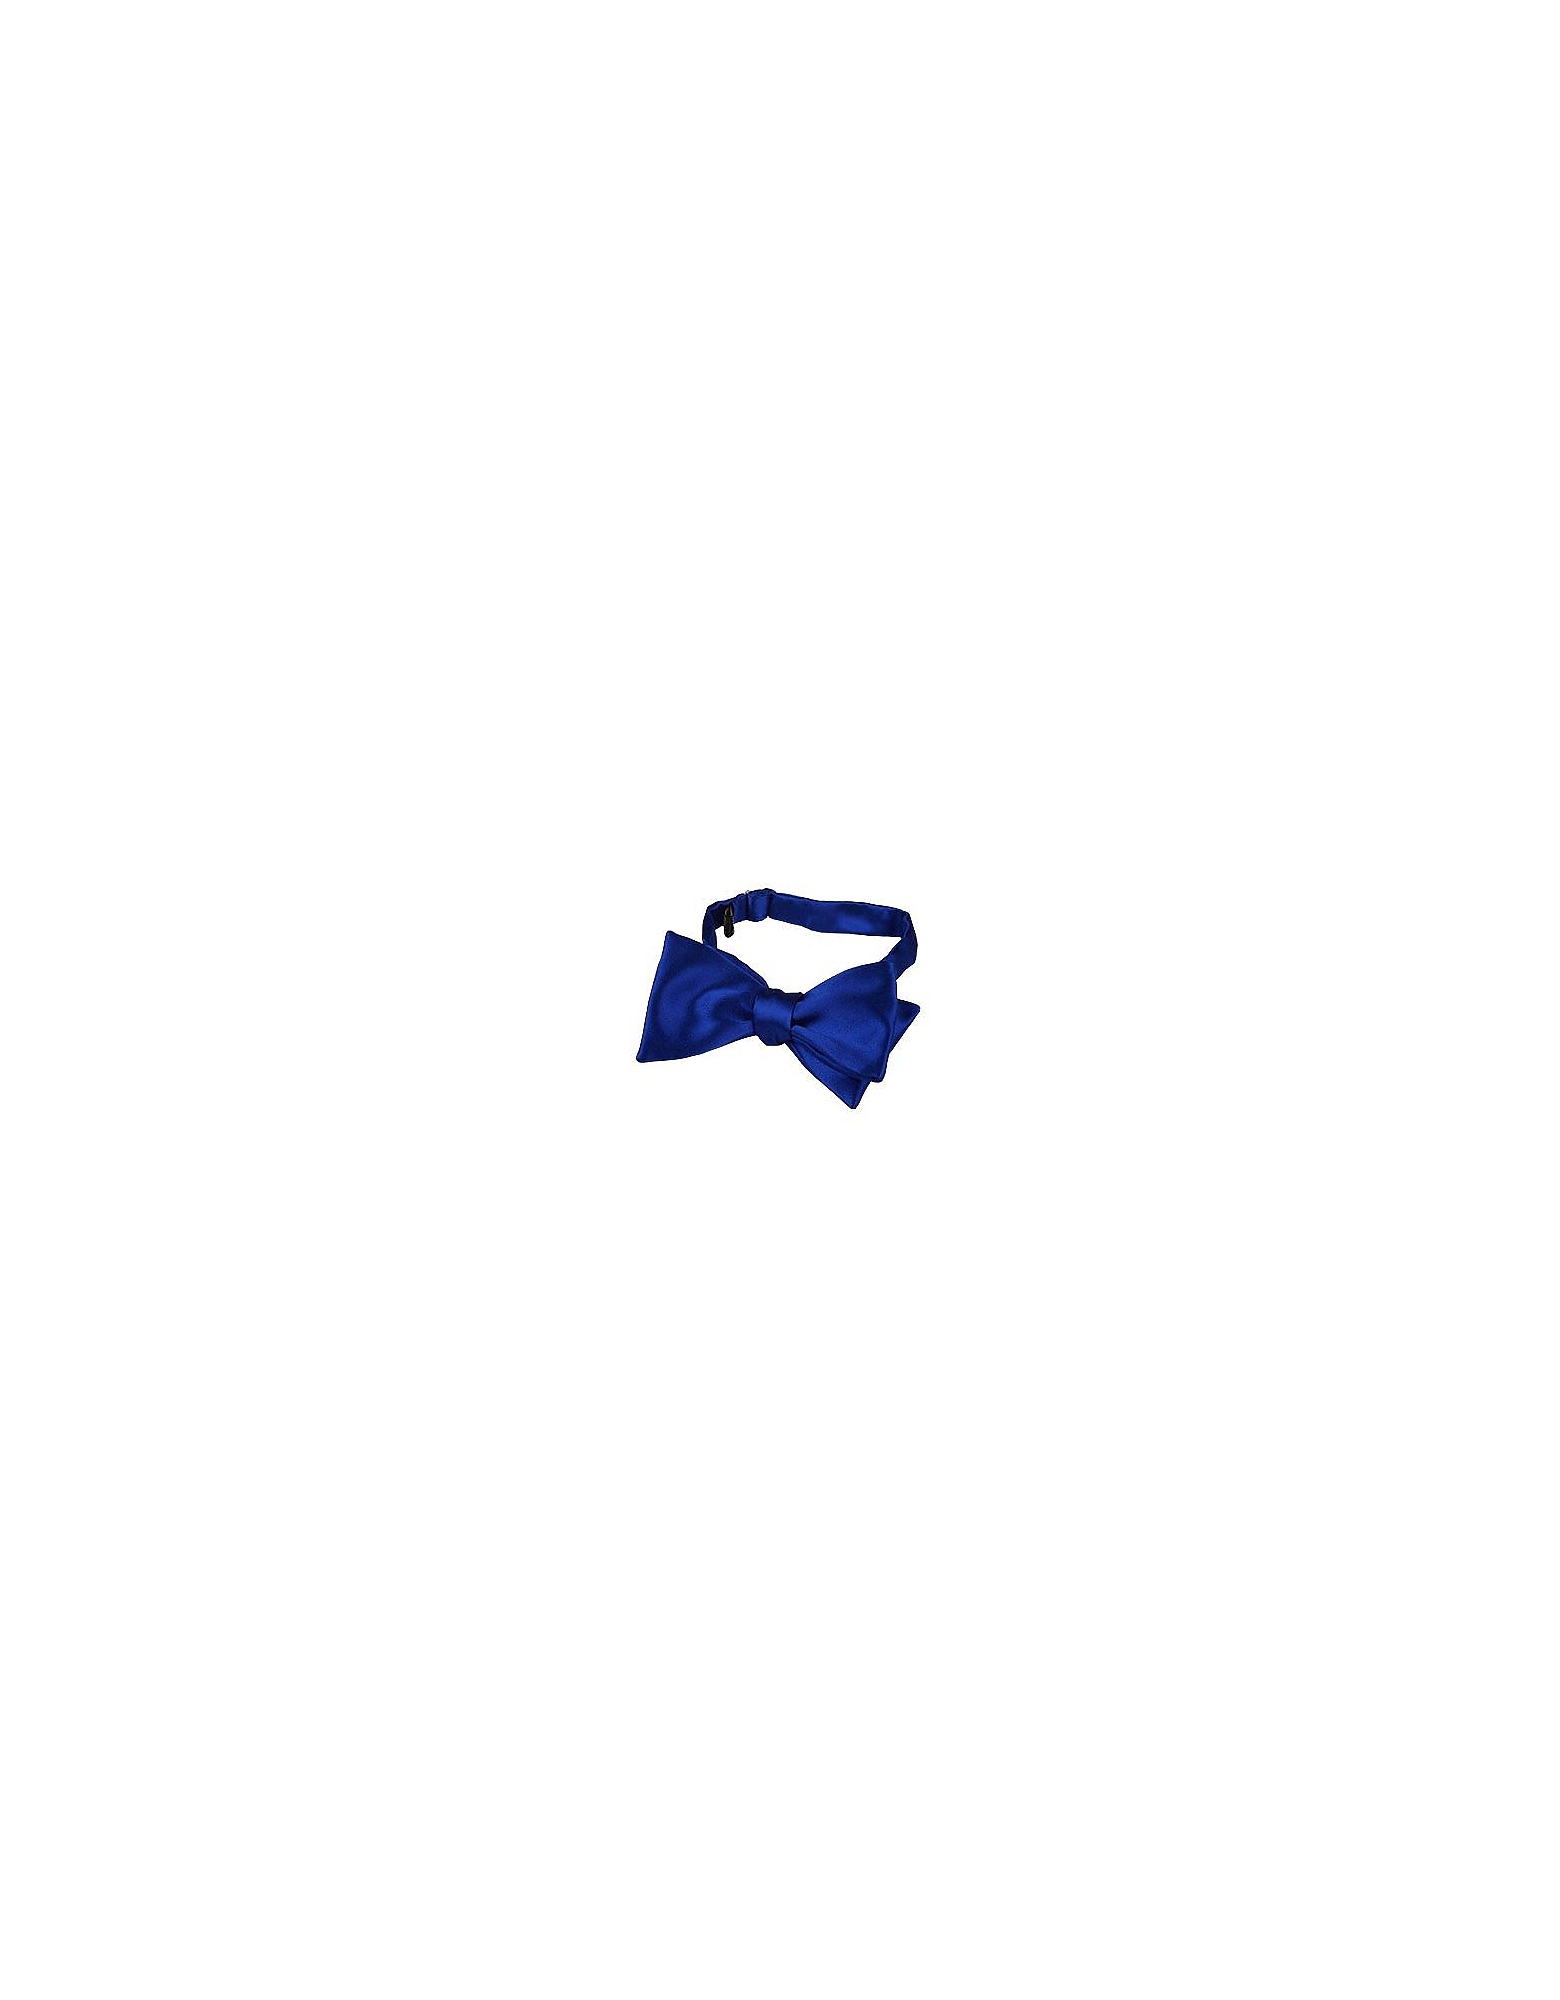 Forzieri Designer Bowties and Cummerbunds, Blue Solid Silk Self-tie Bowtie